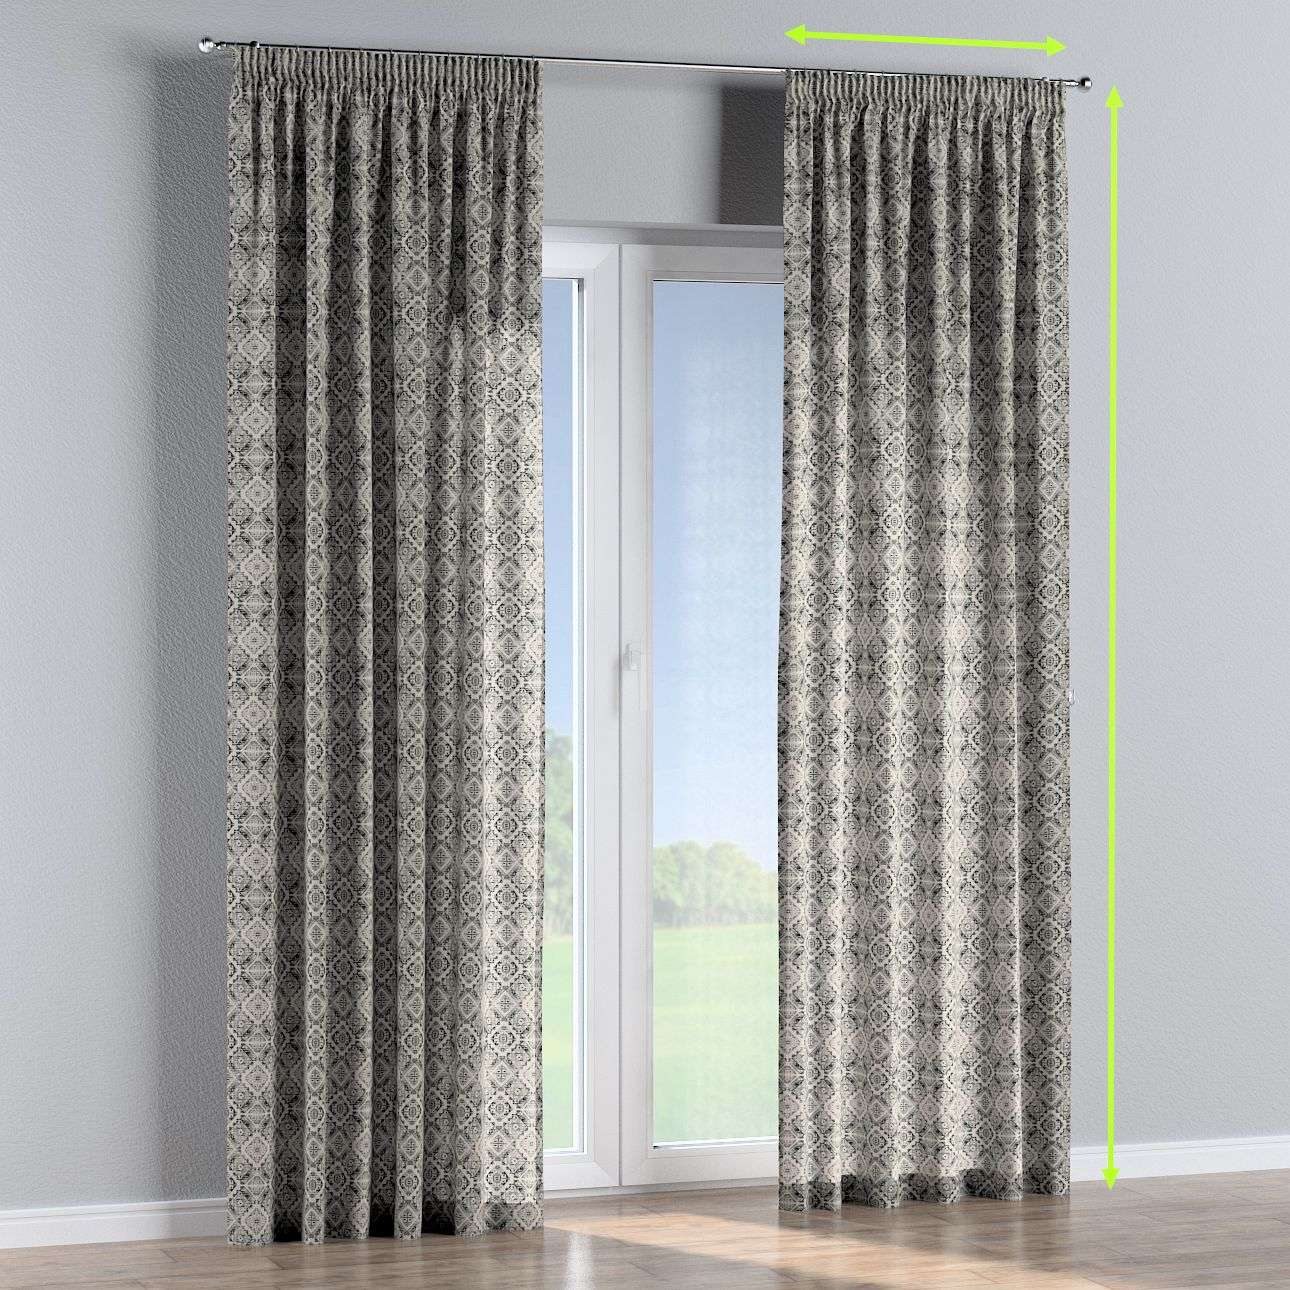 Pencil pleat curtains in collection Comic Book & Geo Prints, fabric: 141-18